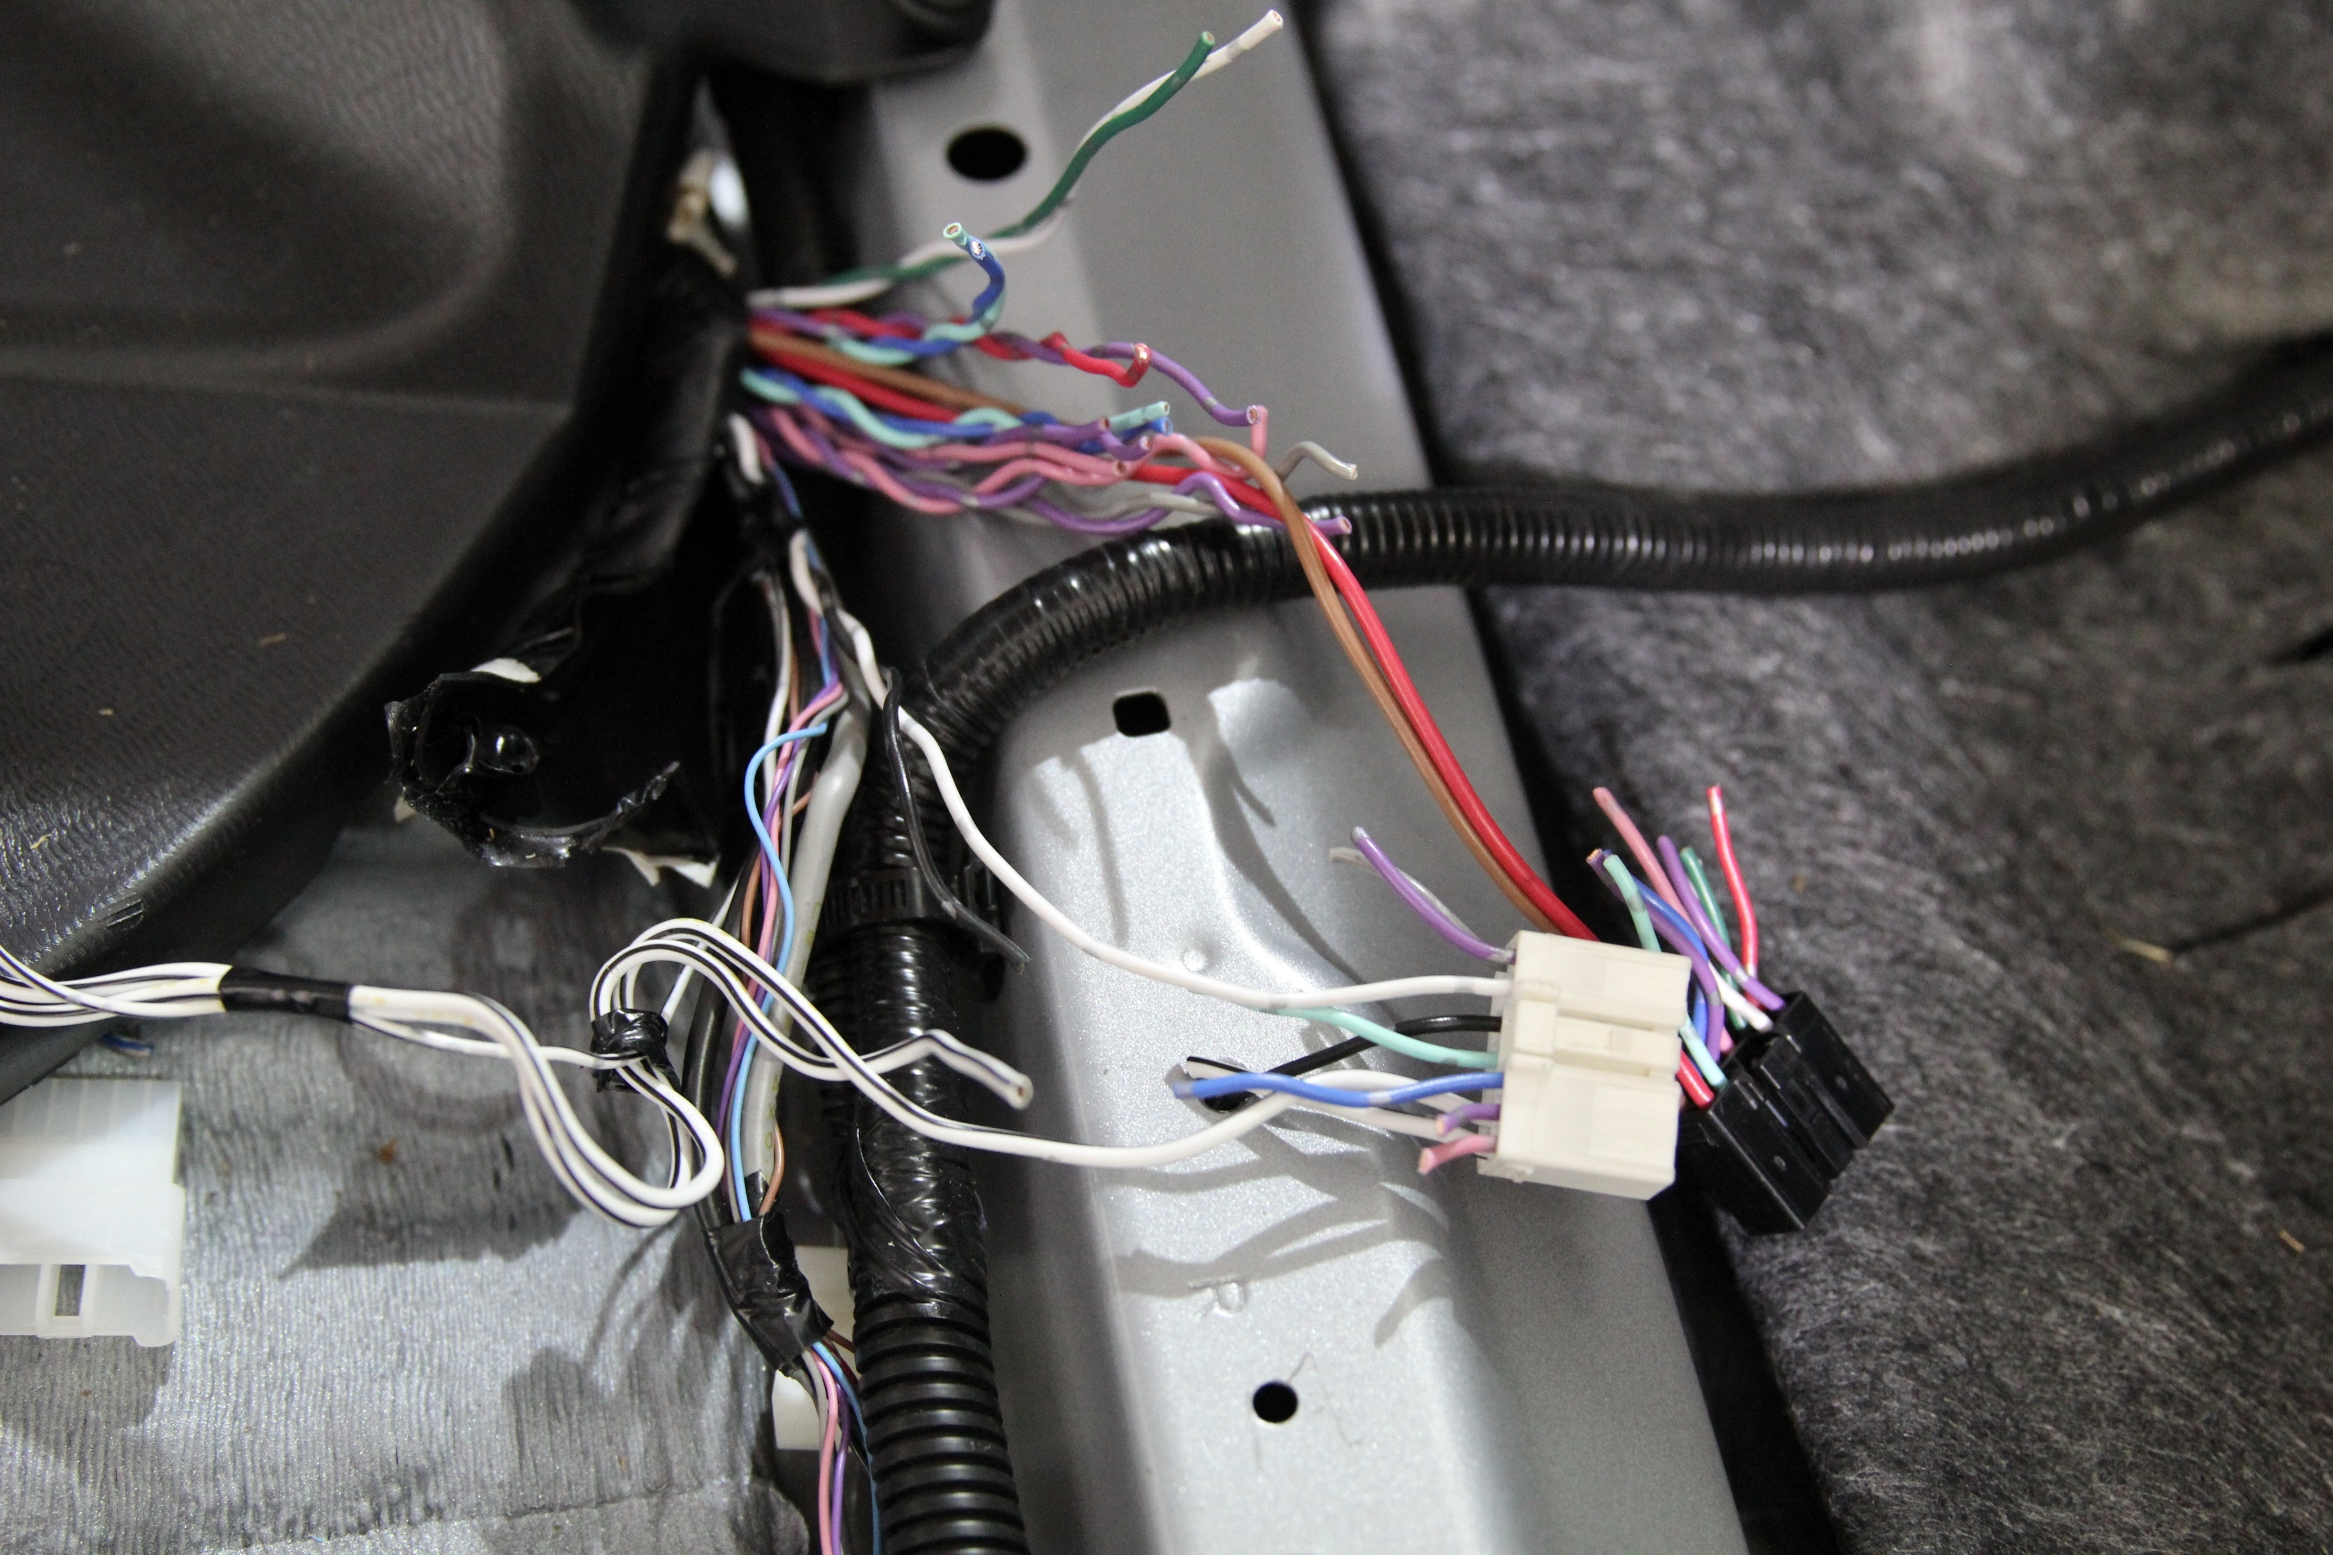 Tundra JBL Wiring Harness Repair Making New Harness 2?resize\\\=225%2C160 toyota jbl harness adapter wiring diagrams longlifeenergyenzymes com tao wiring harness replace at edmiracle.co